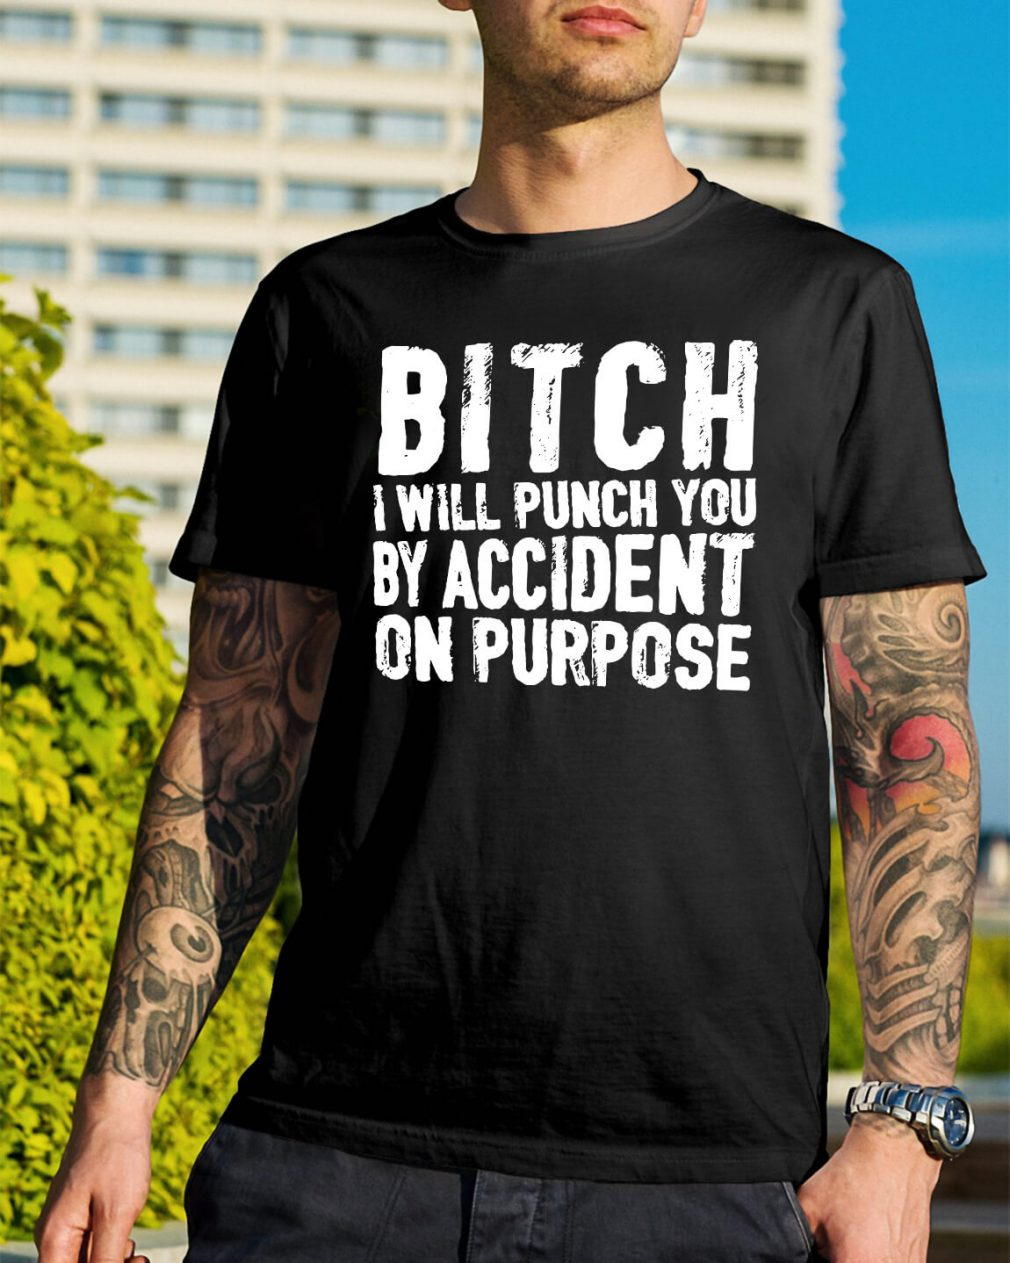 Bitch I will punch you by accident on purpose shirt